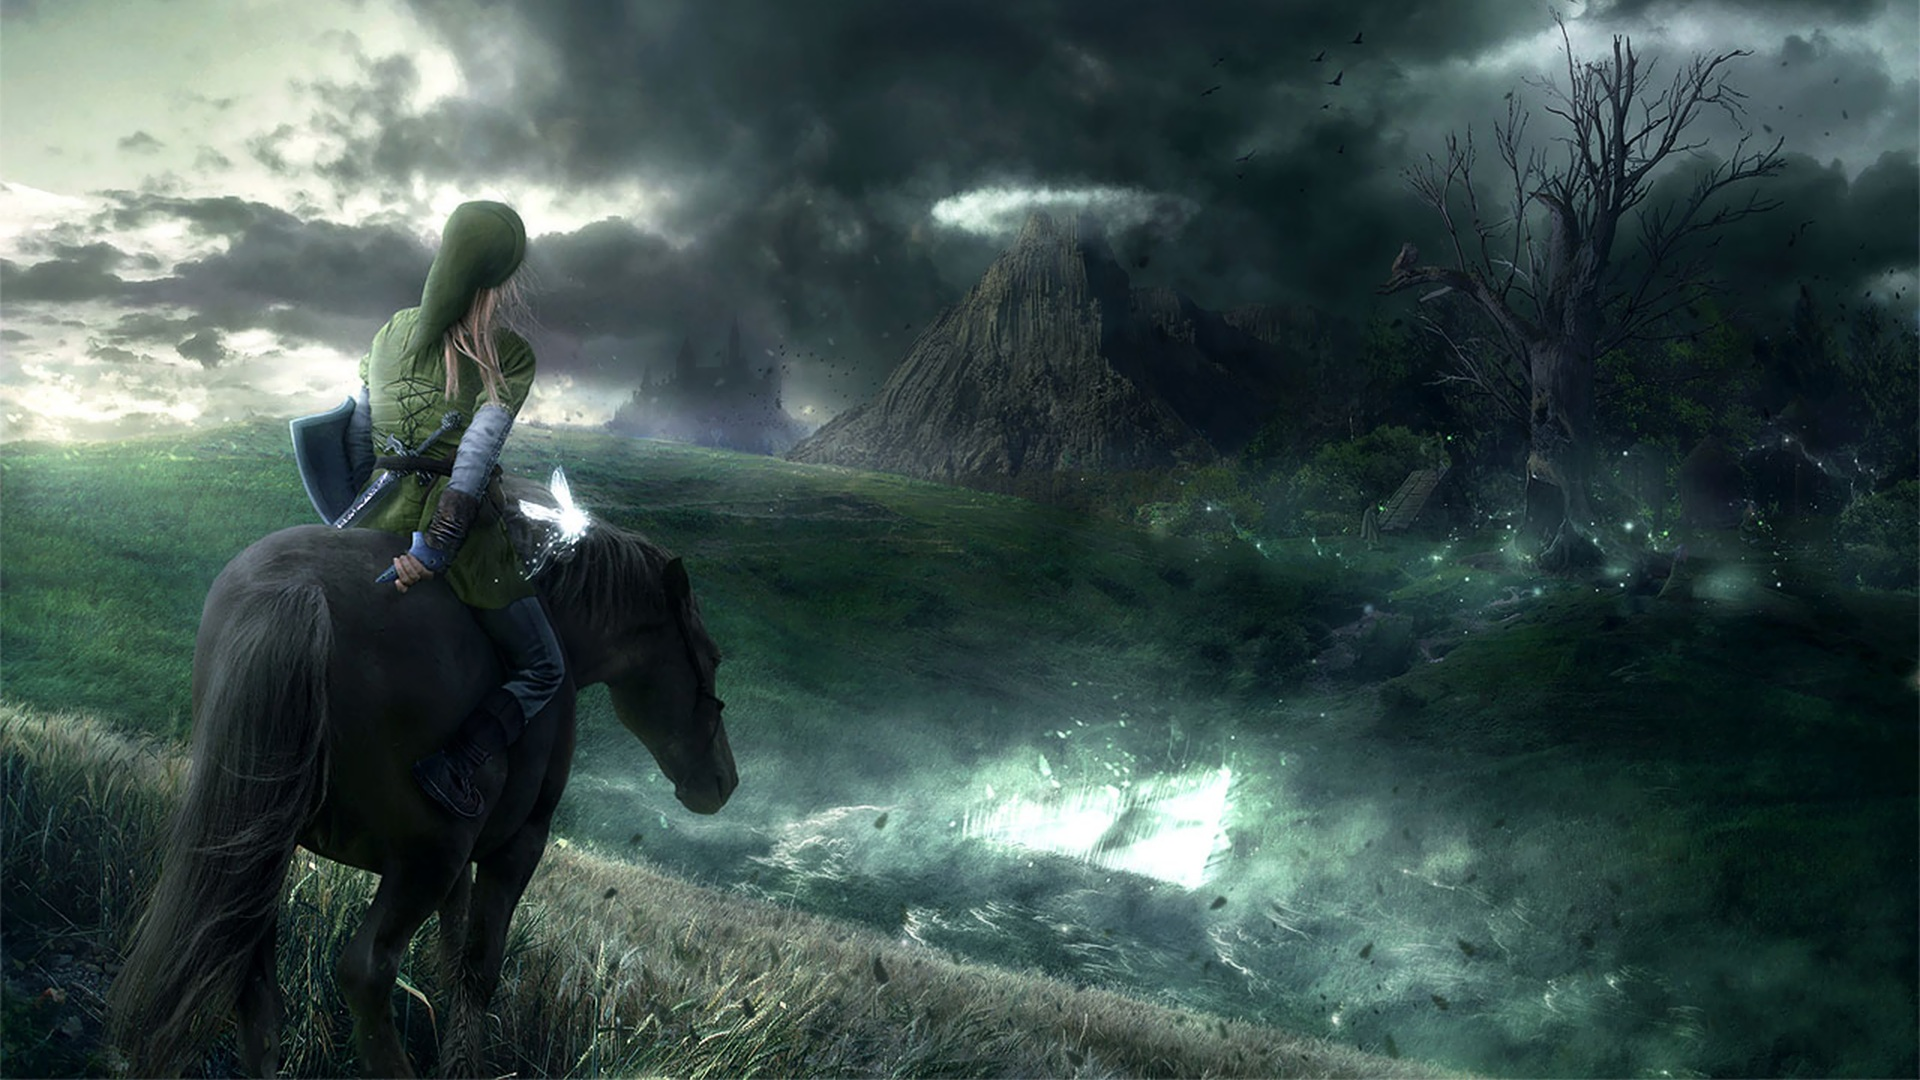 The Legend Of Zelda HD Wallpaper | Background Image | 1920x1080 | ID:274375 - Wallpaper Abyss